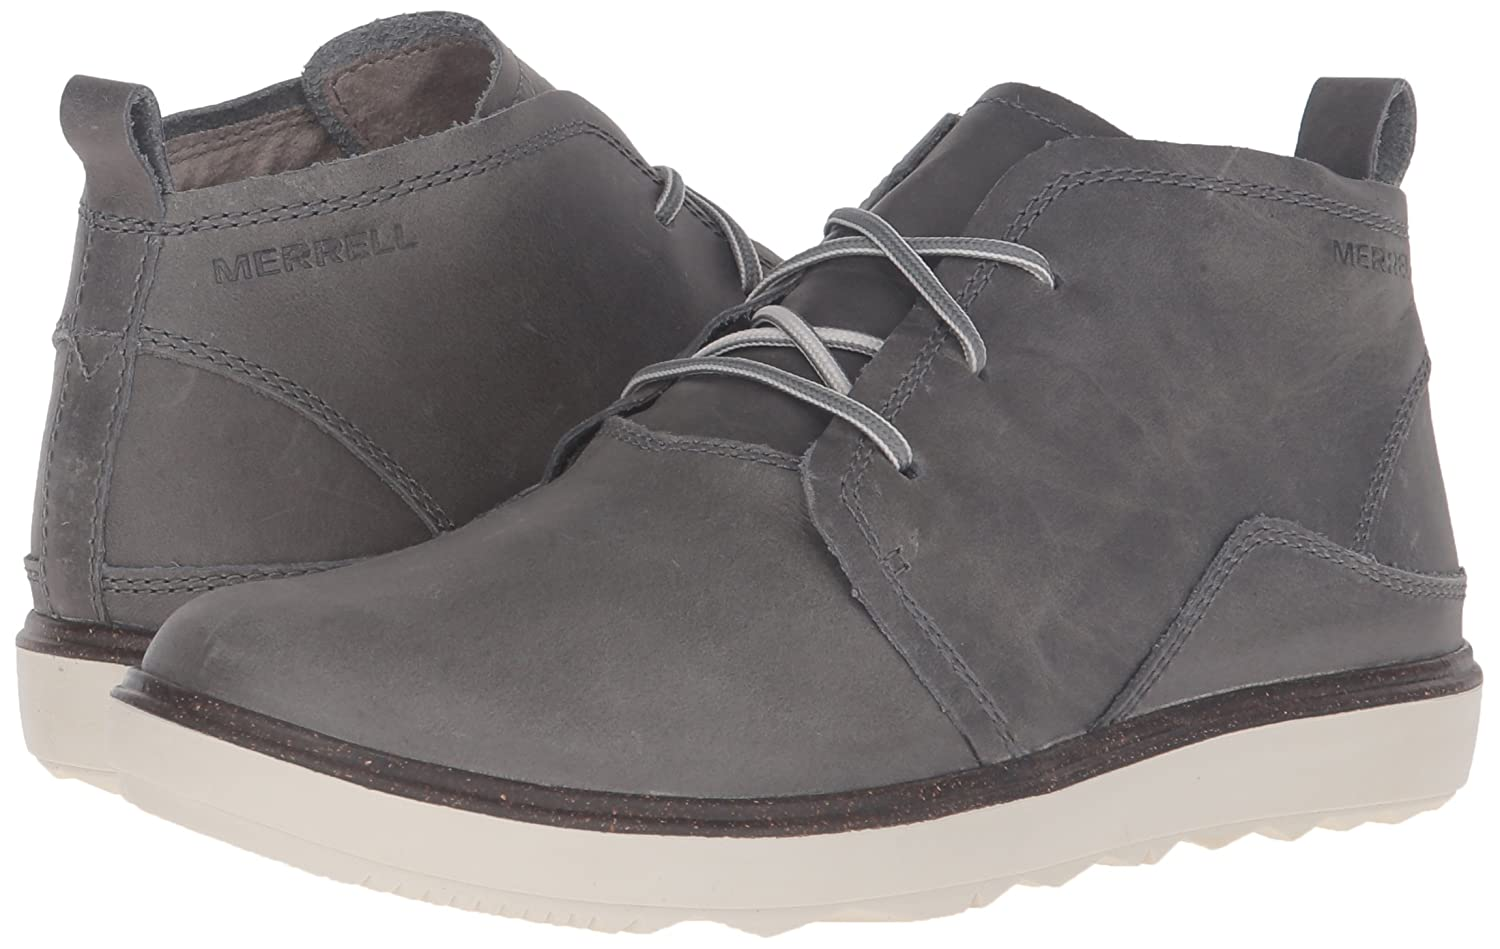 Merrell Women's Around Town Chukka Boots Buy Cheap Brand New Unisex niSBTnl